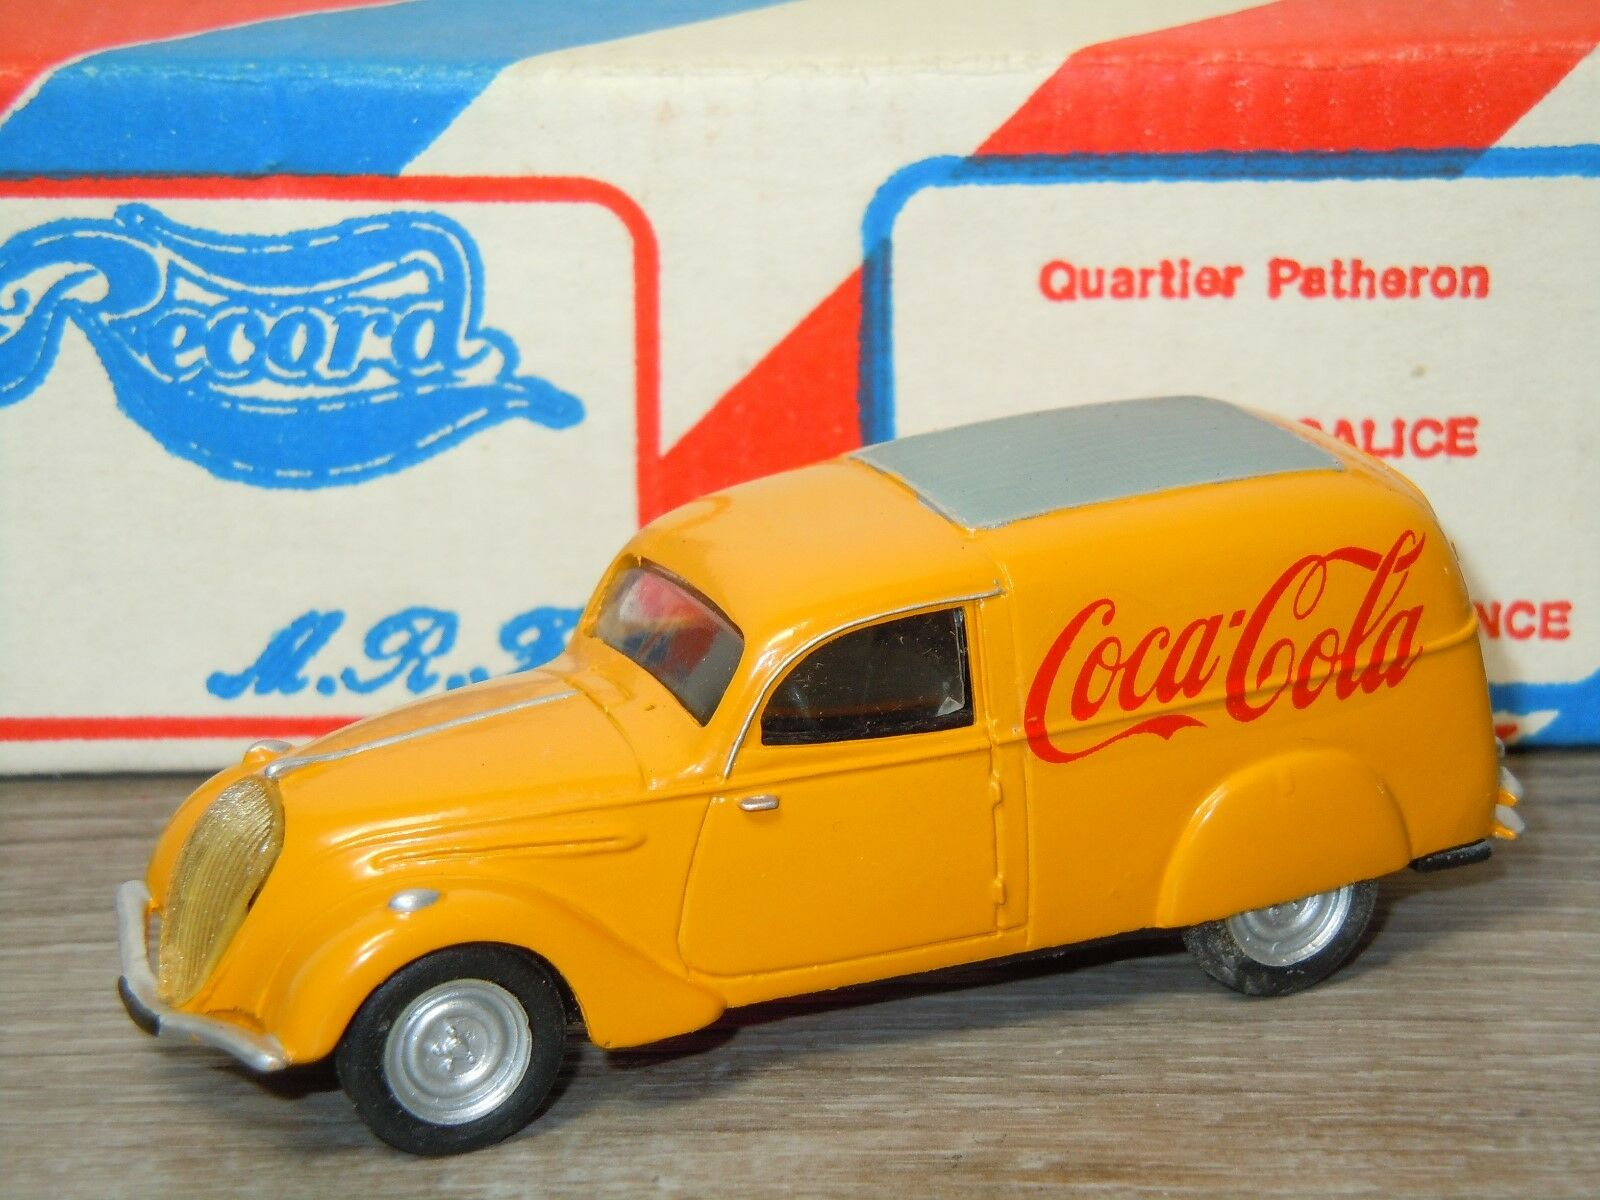 Peugeot 202 Fourgon 1939 Coca Cola van Record Models France 1 43 in Box 26489